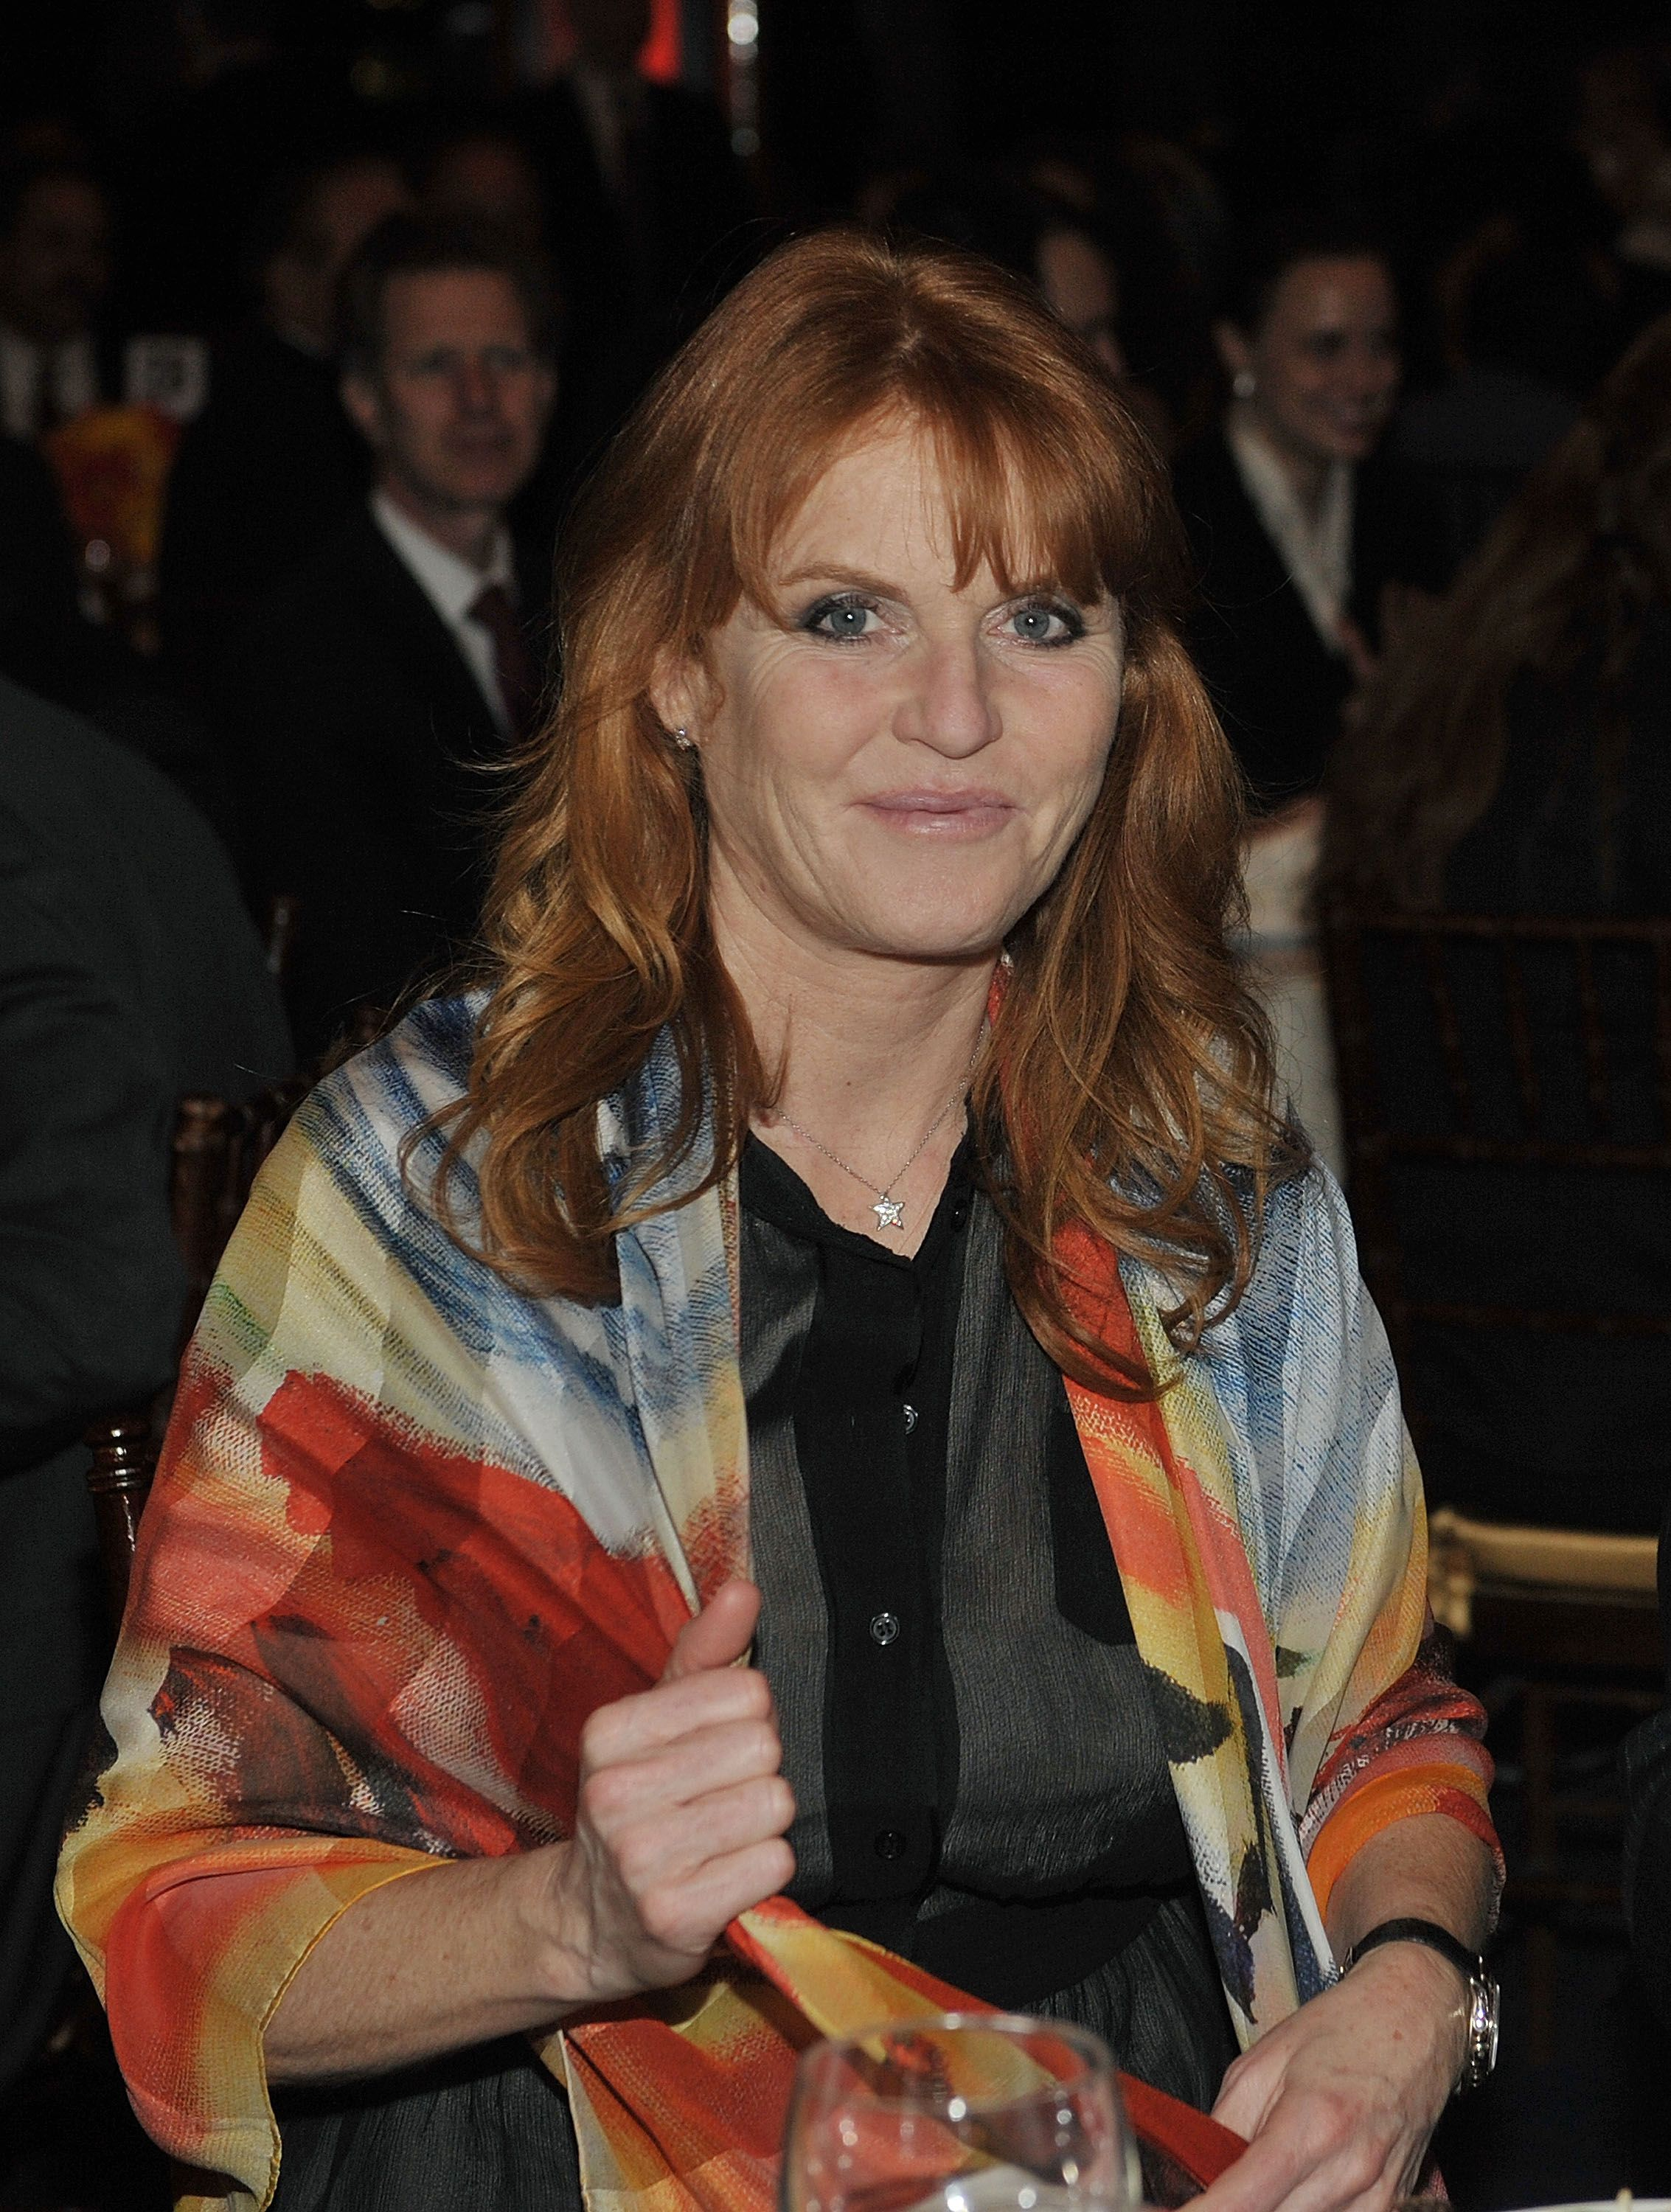 Sarah Ferguson at the Miracle Corners of the World Annual Gala dinner celebration on April 13, 2010, in New York City   Photo: Slaven Vlasic/Getty Images